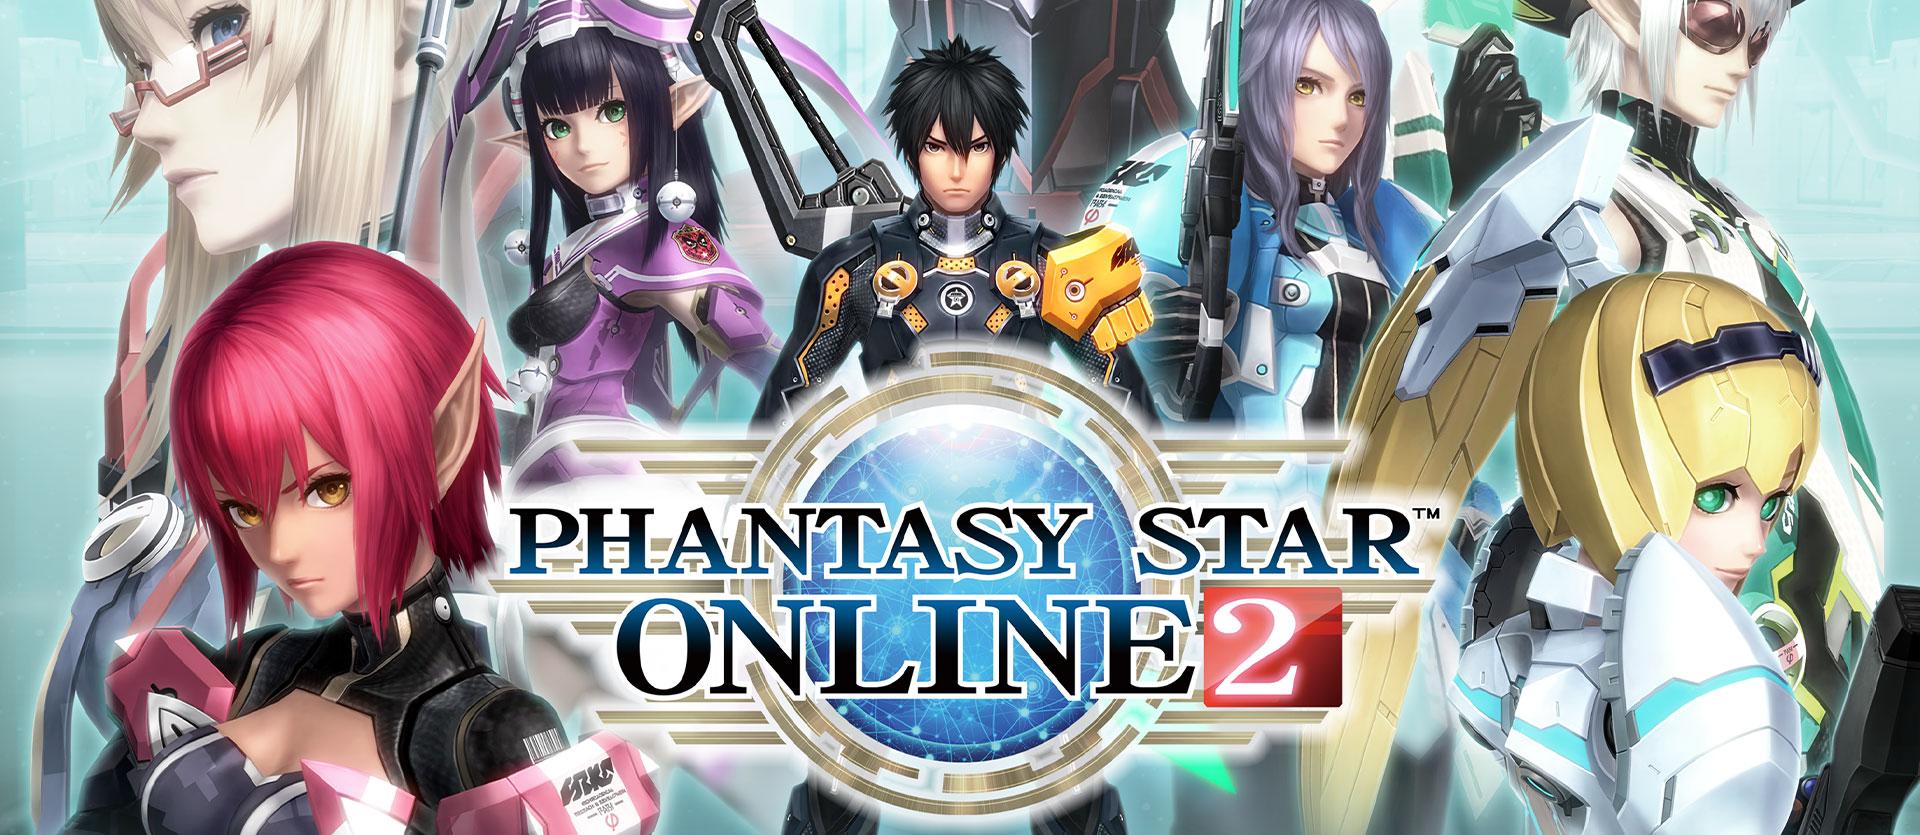 Phantasy Star Online 2, un collage de personnages du jeu.